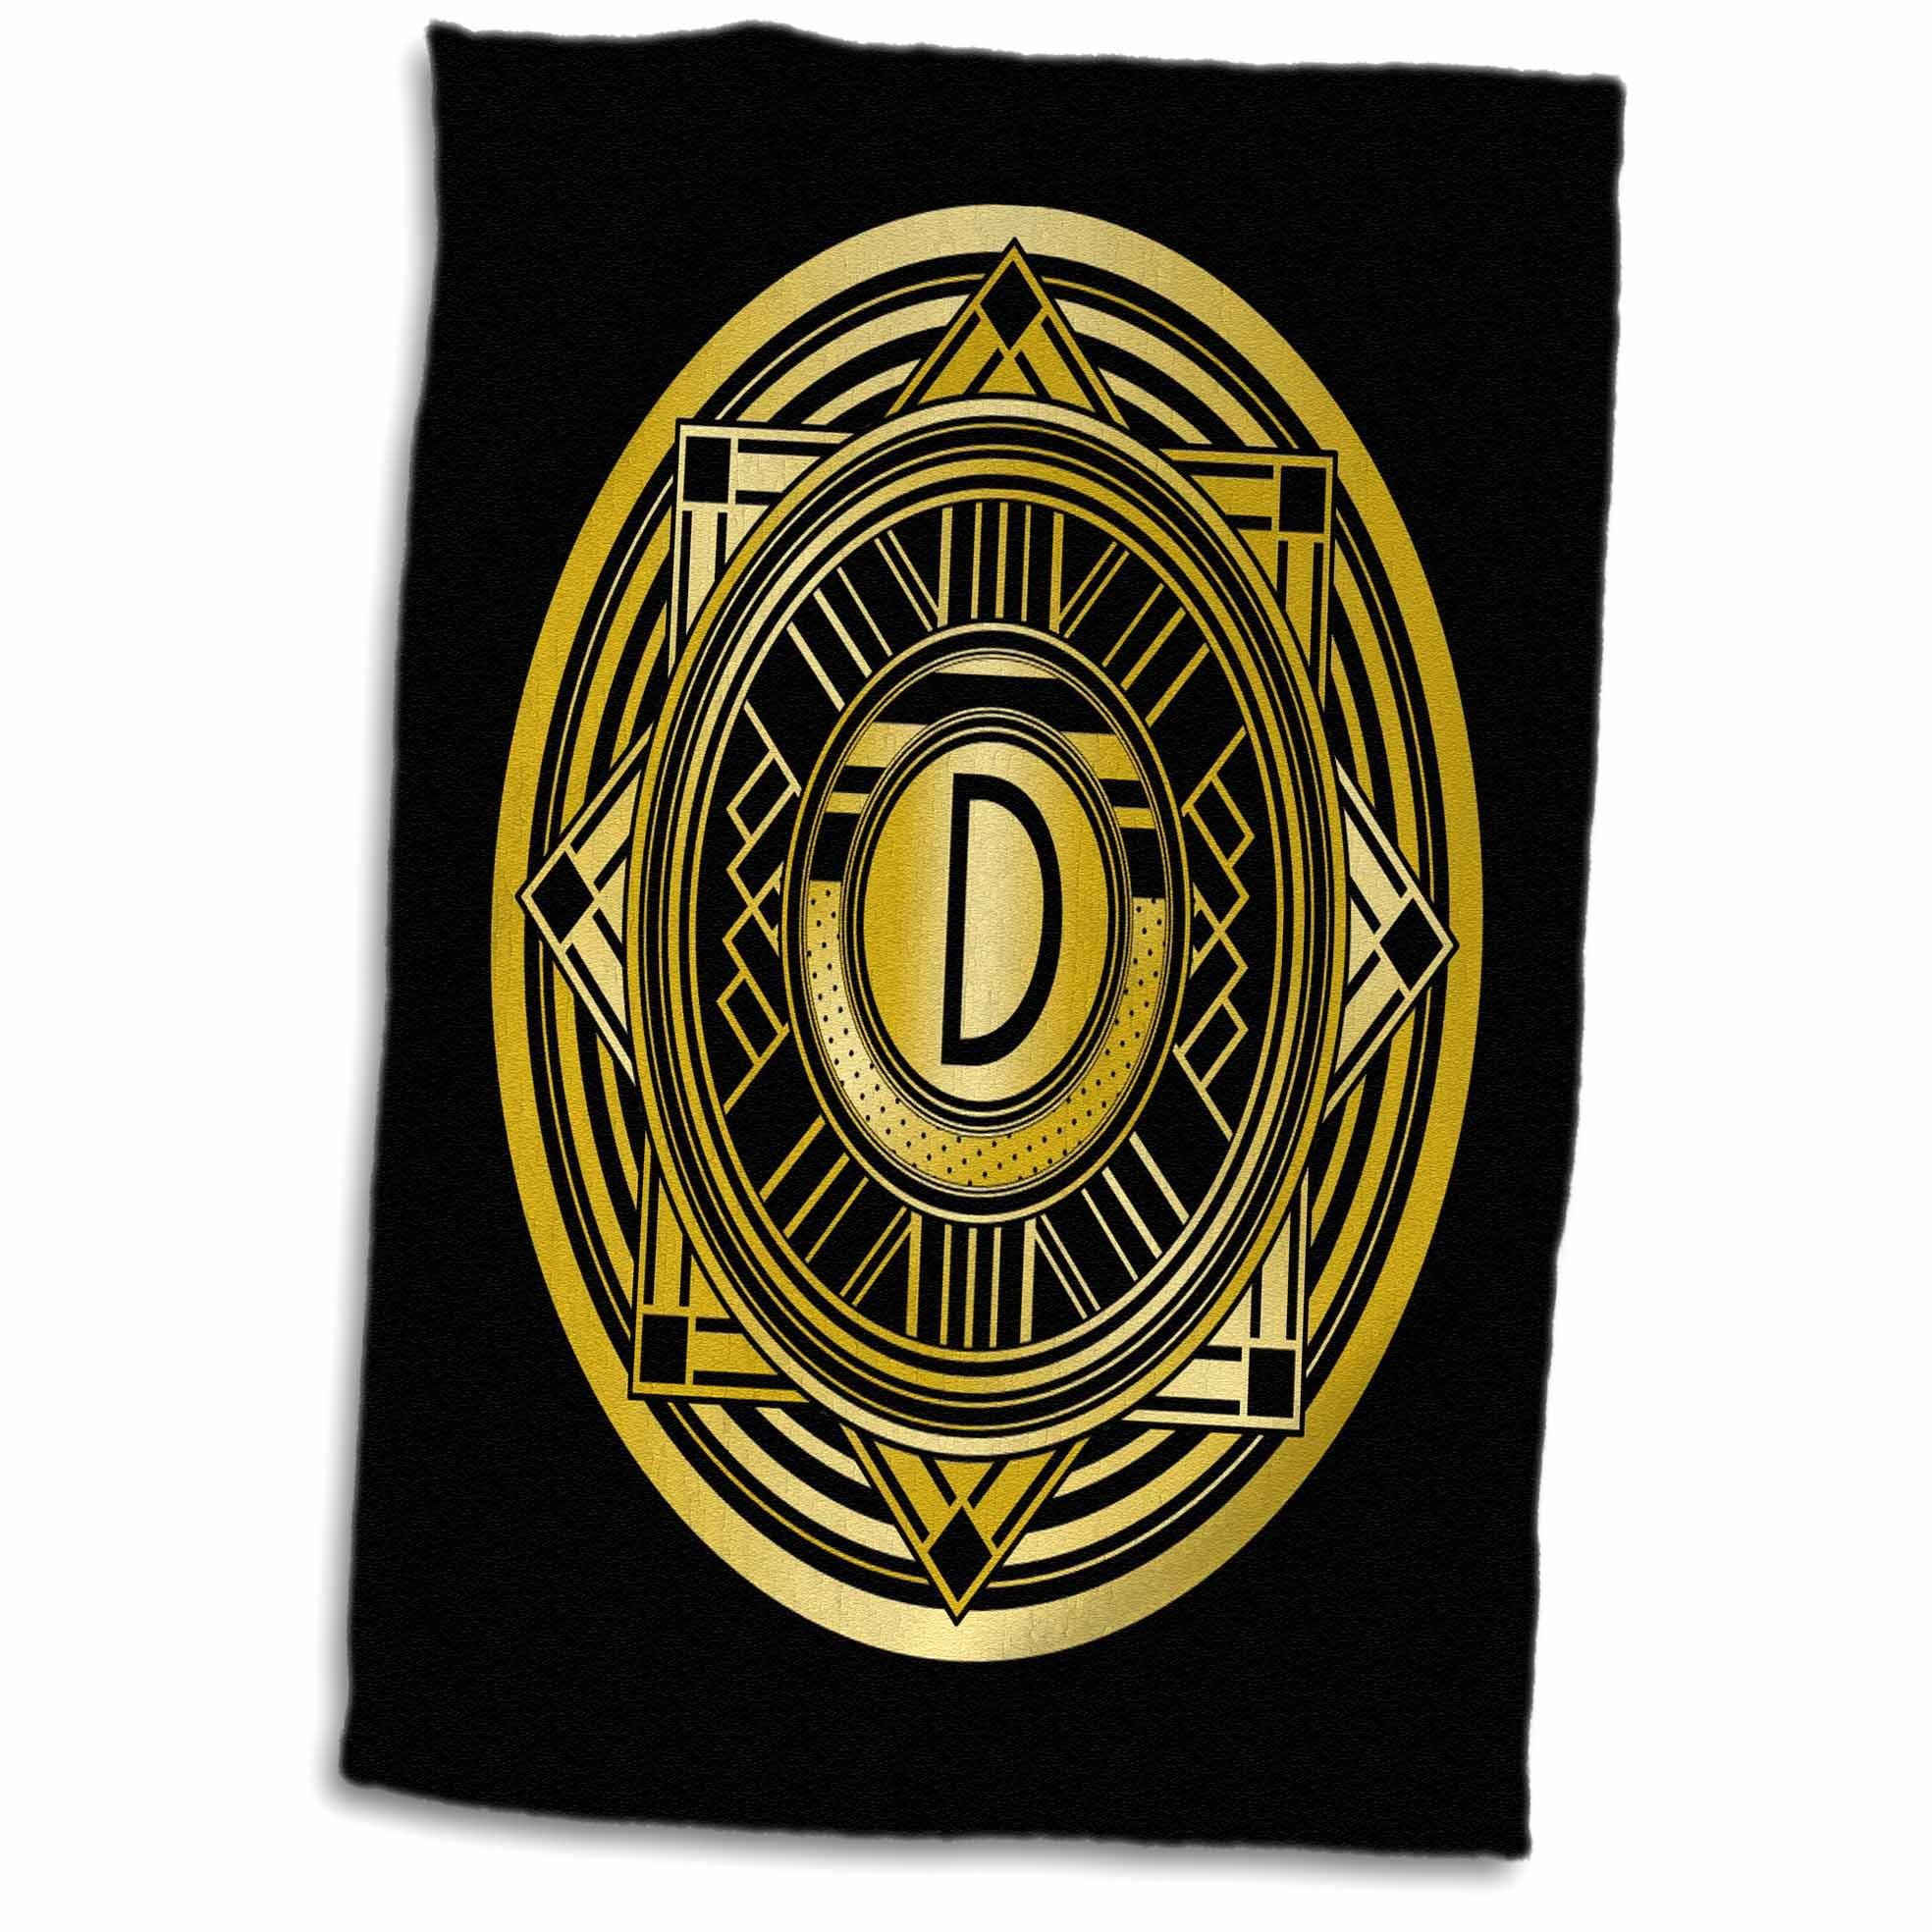 3dRose Letter D Art Deco Geometric Monogram in Faux Gold and Black - Towel, 15 by 22-inch